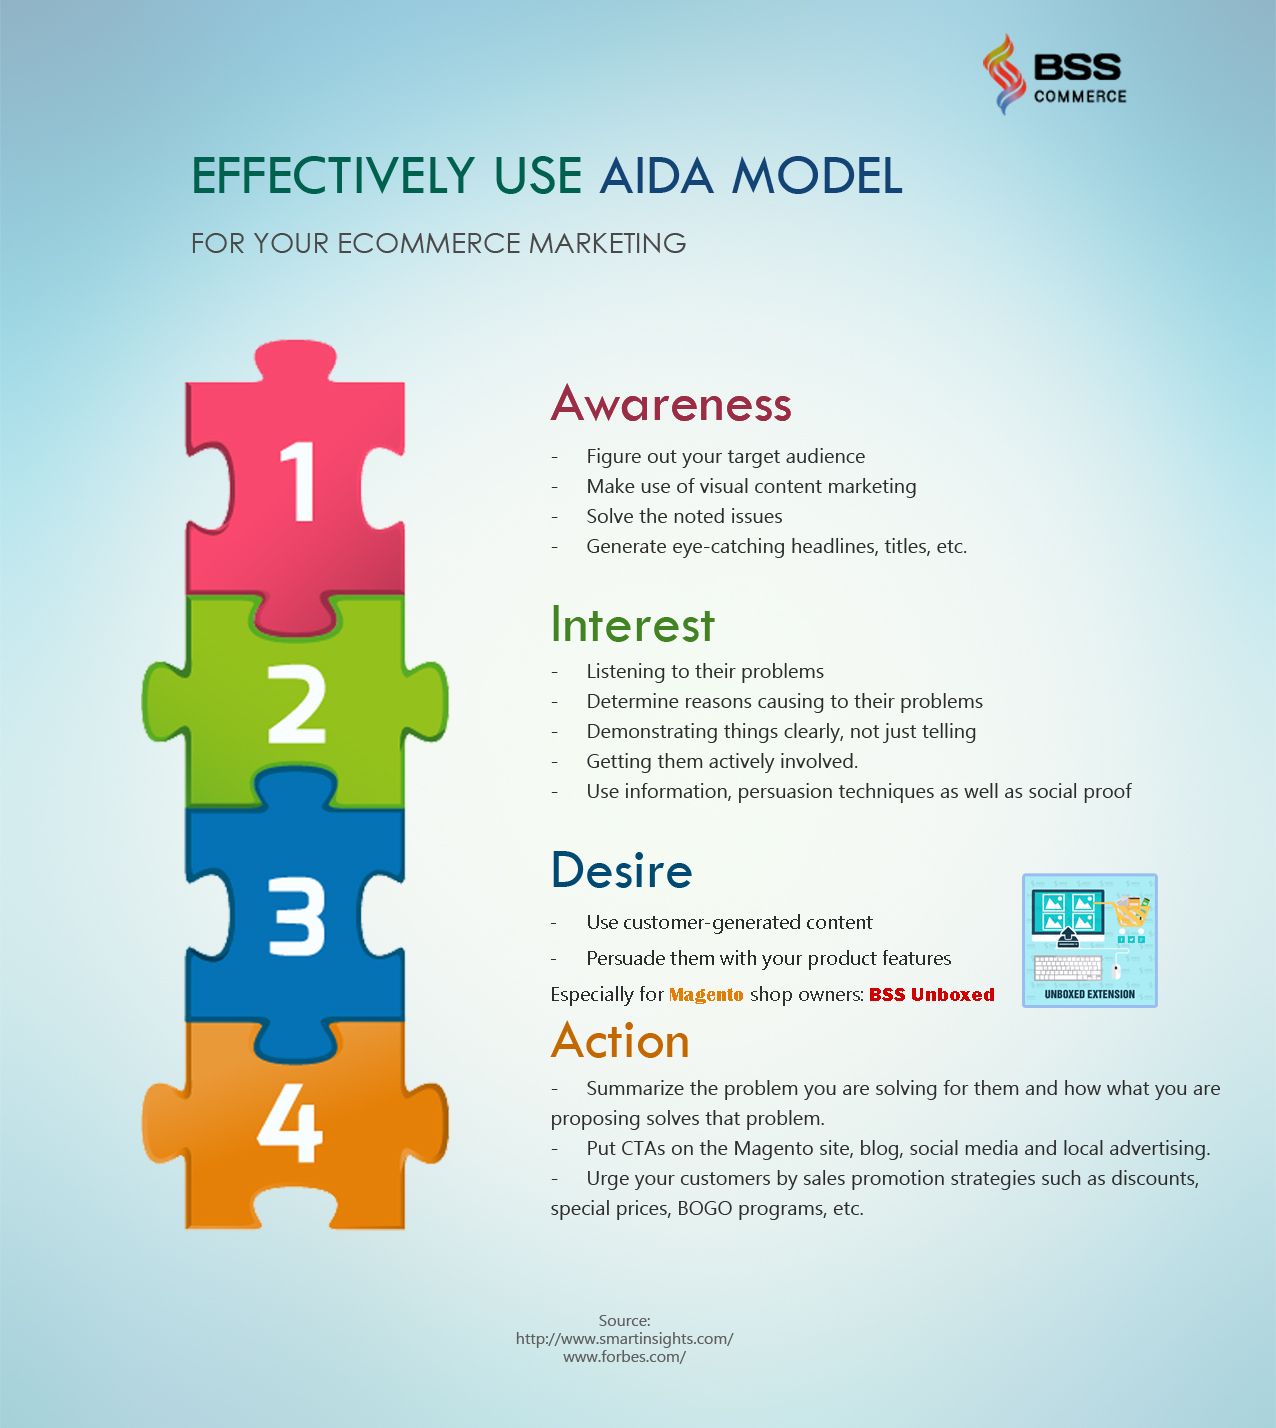 HOW TO EFFECTIVELY USE AIDA MODEL FOR YOUR ECOMMERCE MARKETING 2